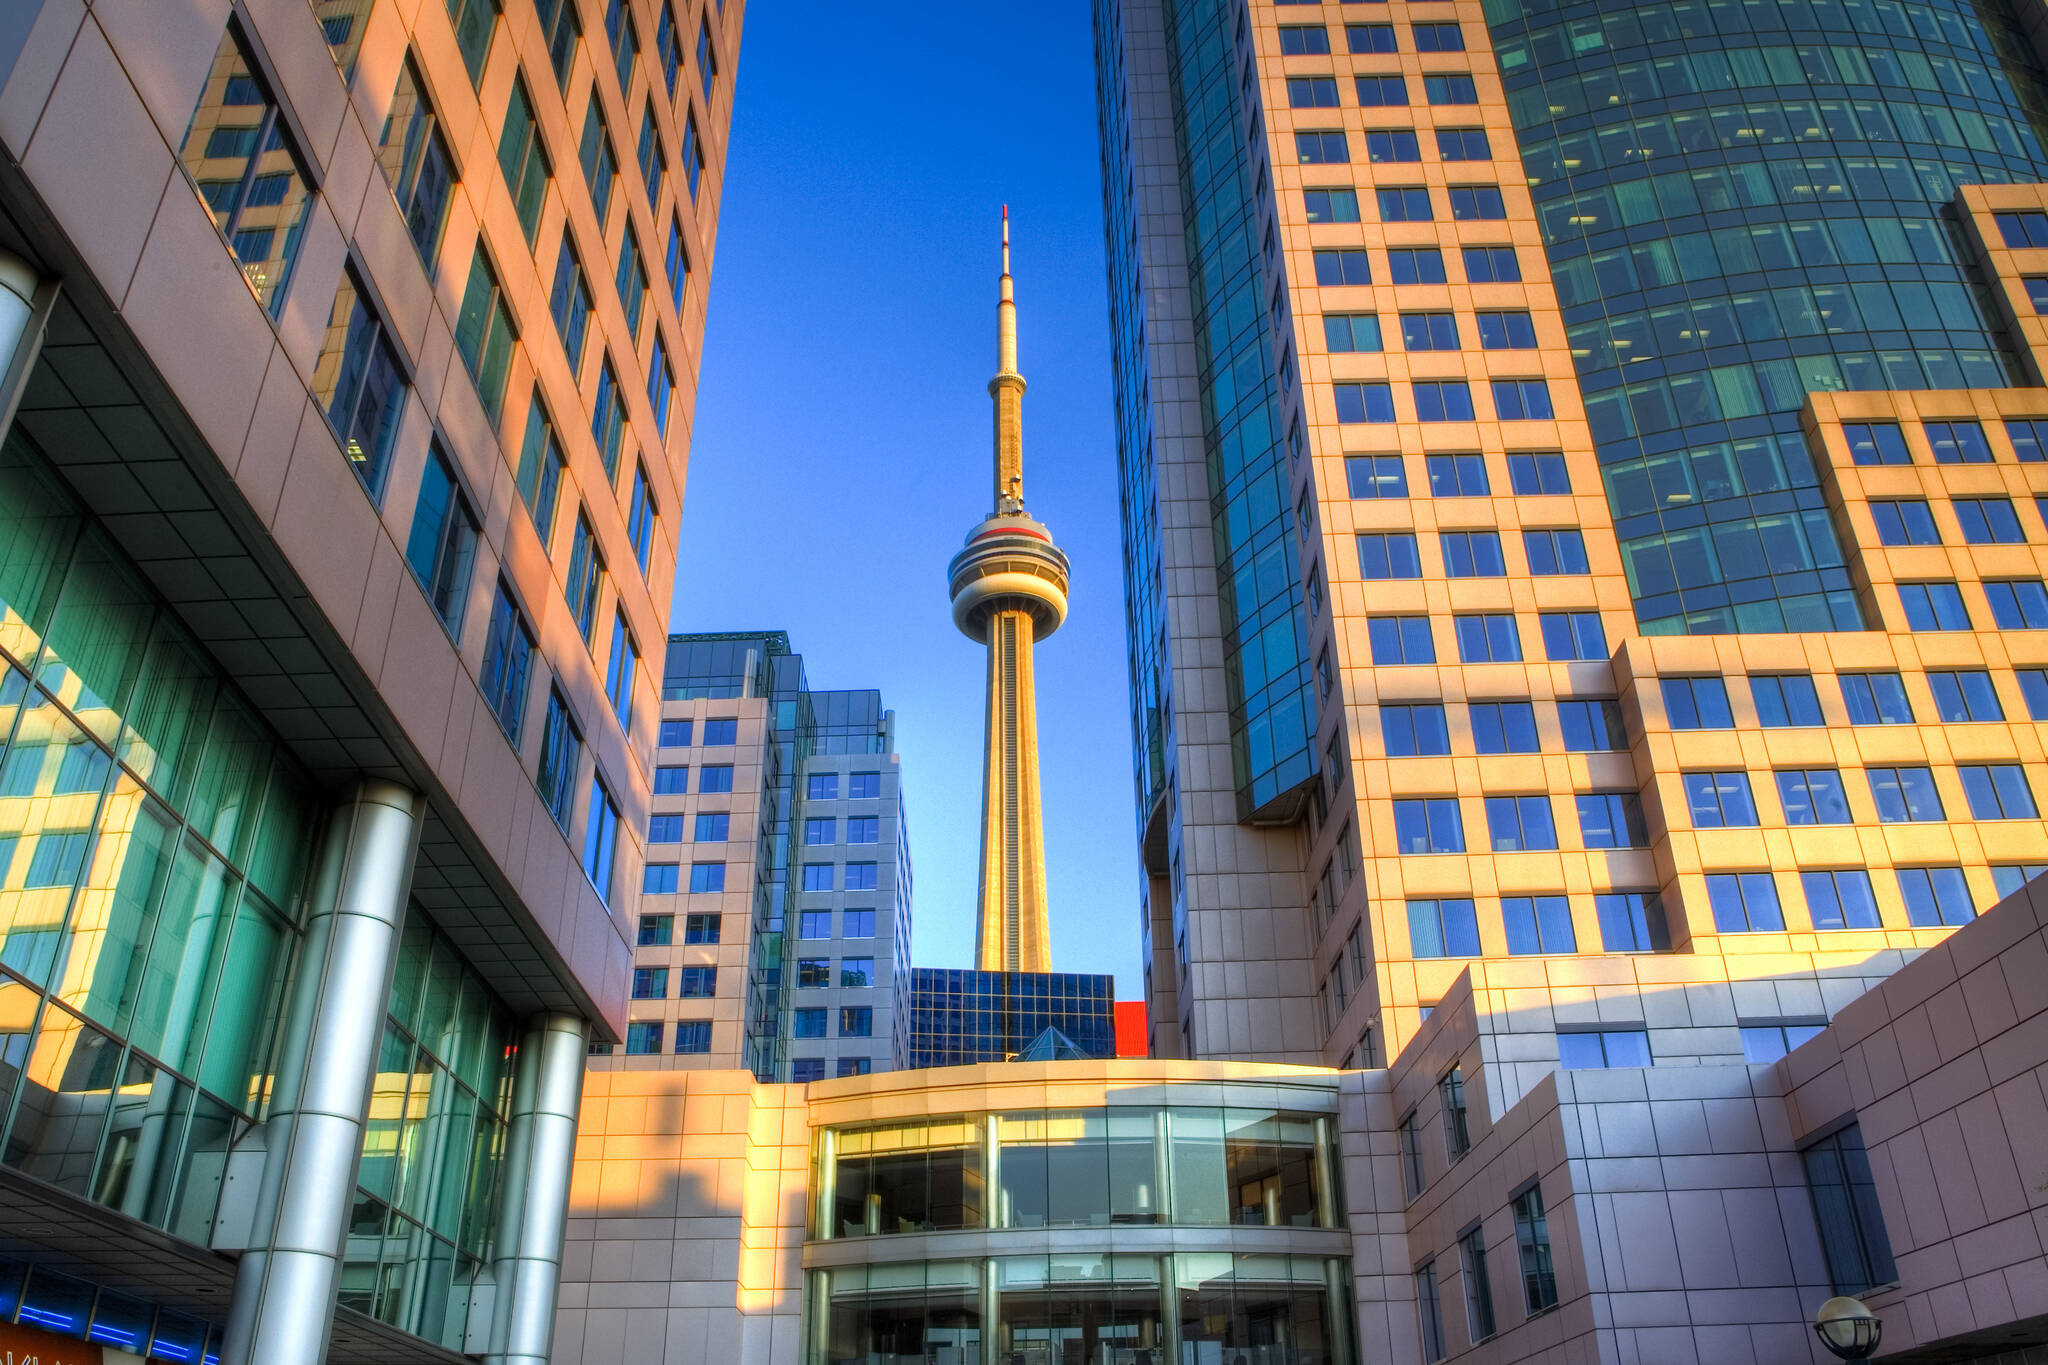 CN tower travel destination